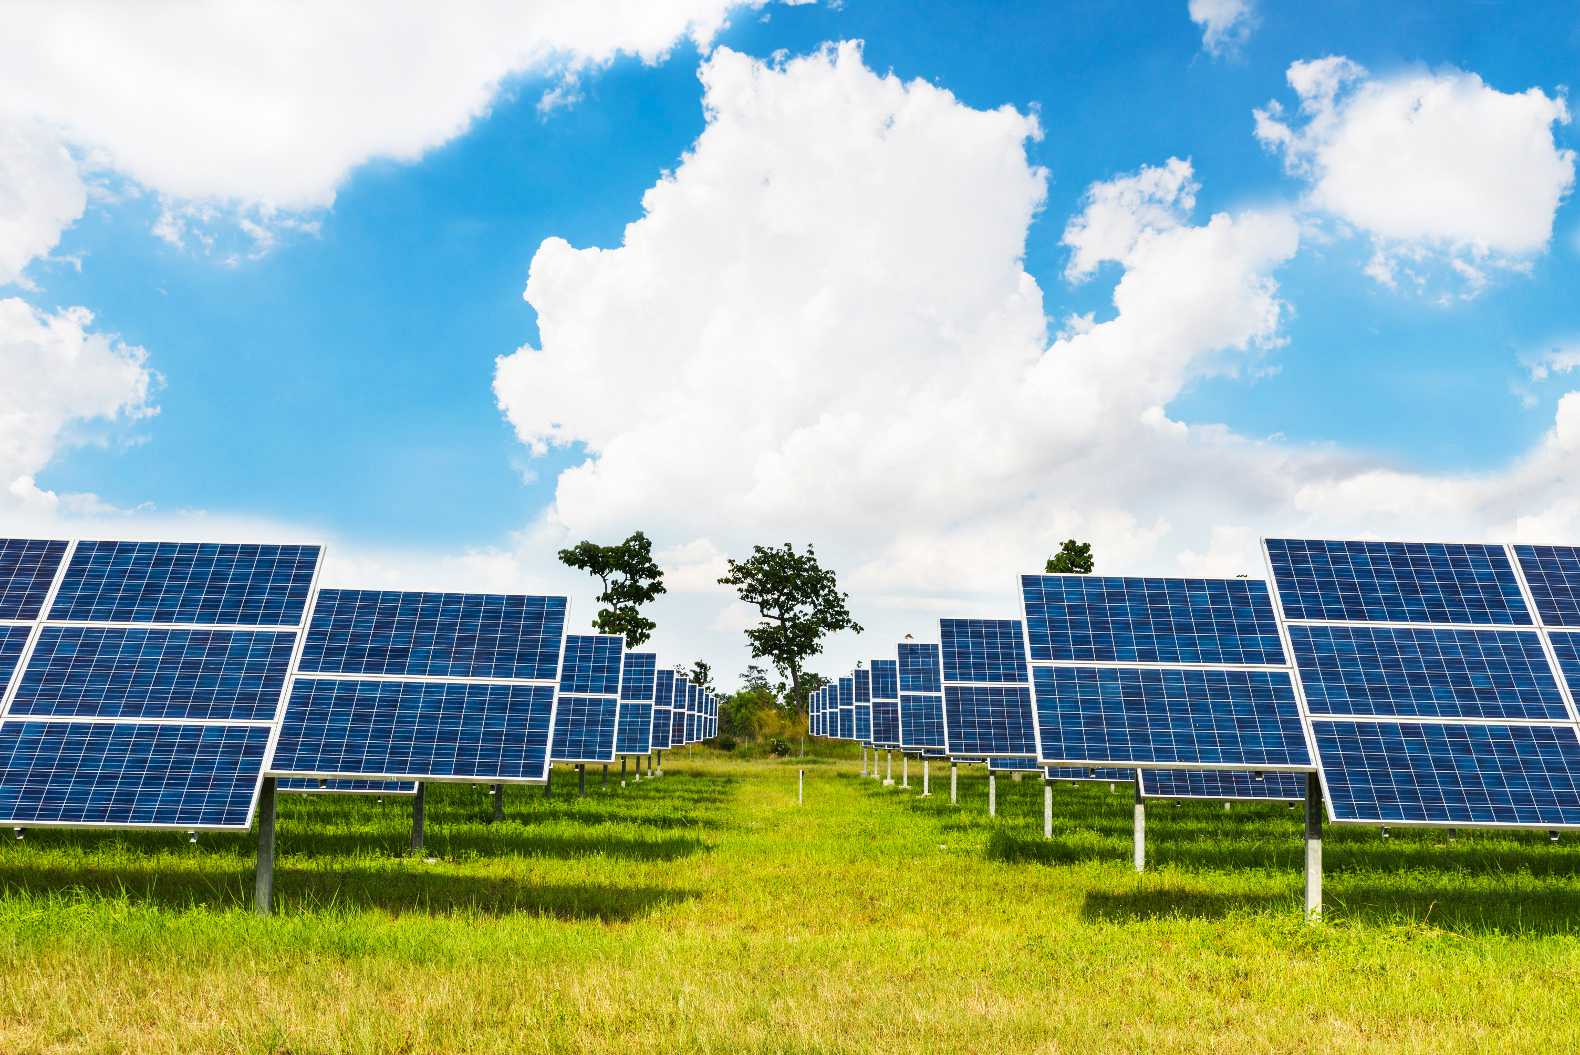 Large-scale solar is nearly the same cost as other fuels in world's three biggest markets